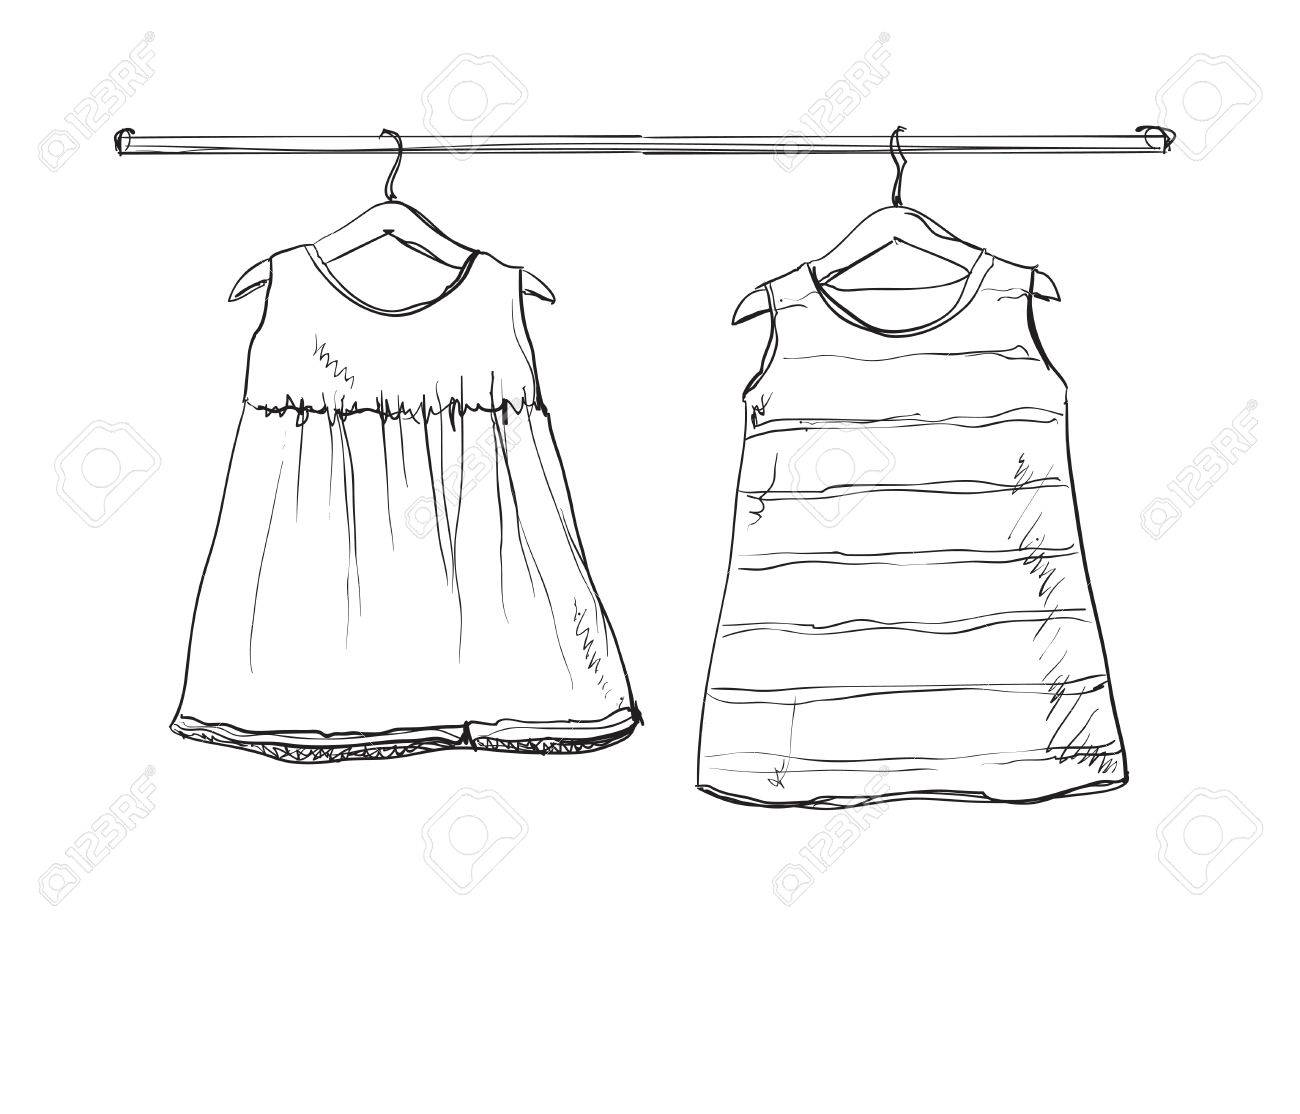 1300x1114 Baby Dress Vector Sketch. Clothes On The Hanger. Hand Drawn